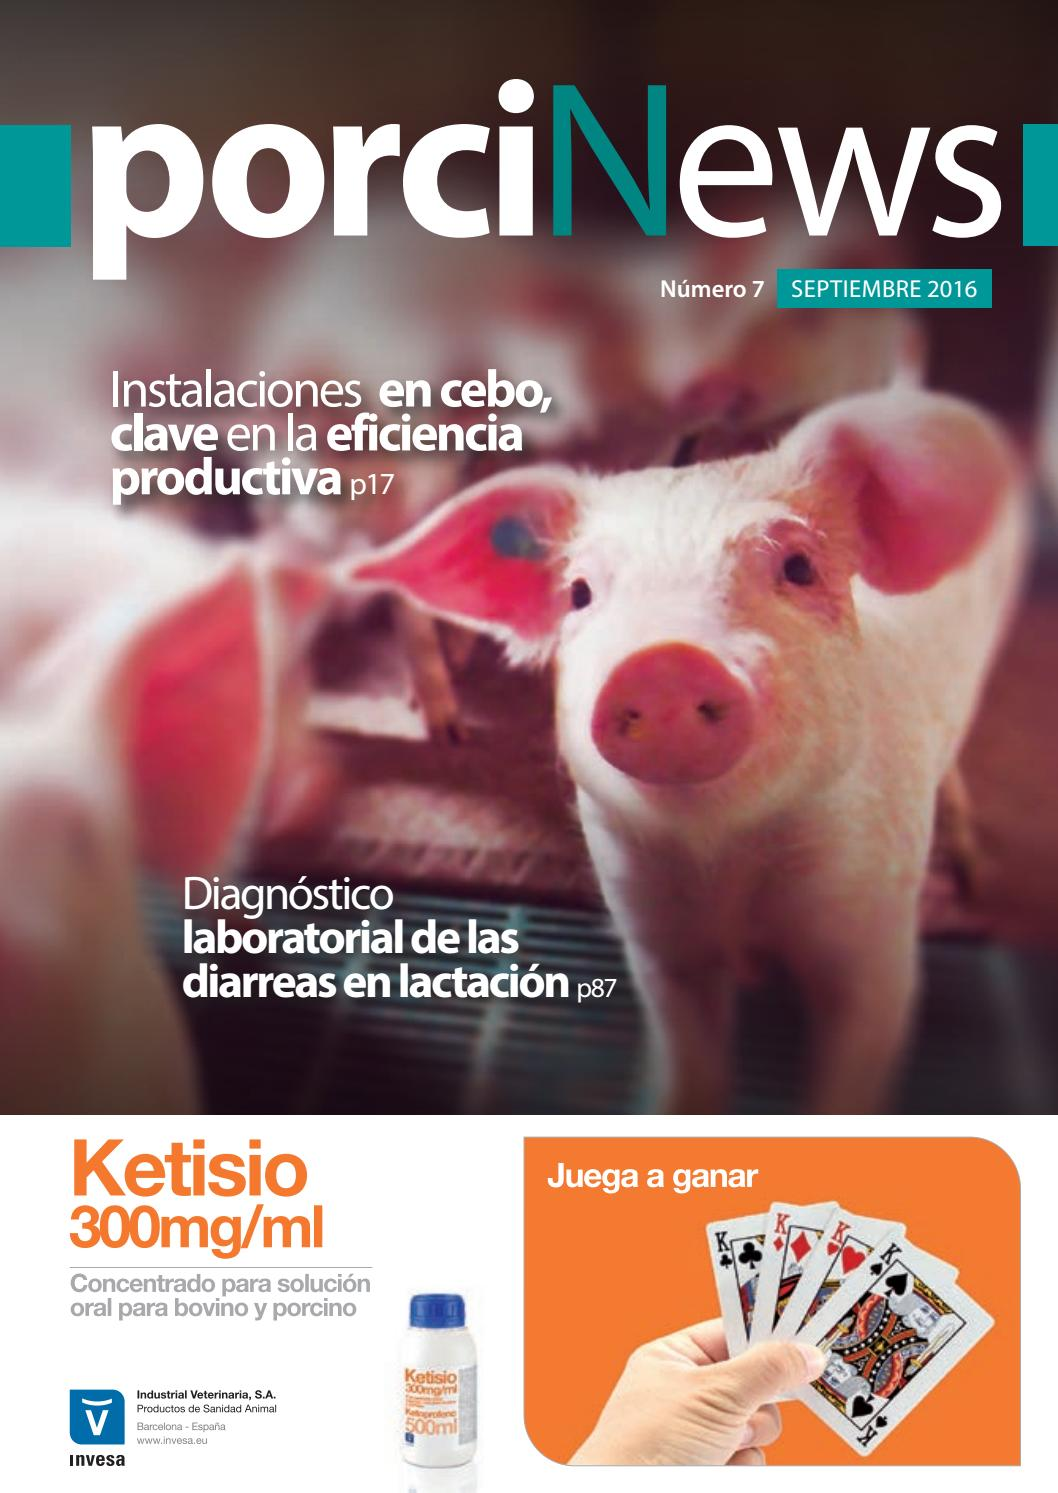 Porcinews marzo 2017 by agrinews - issuu